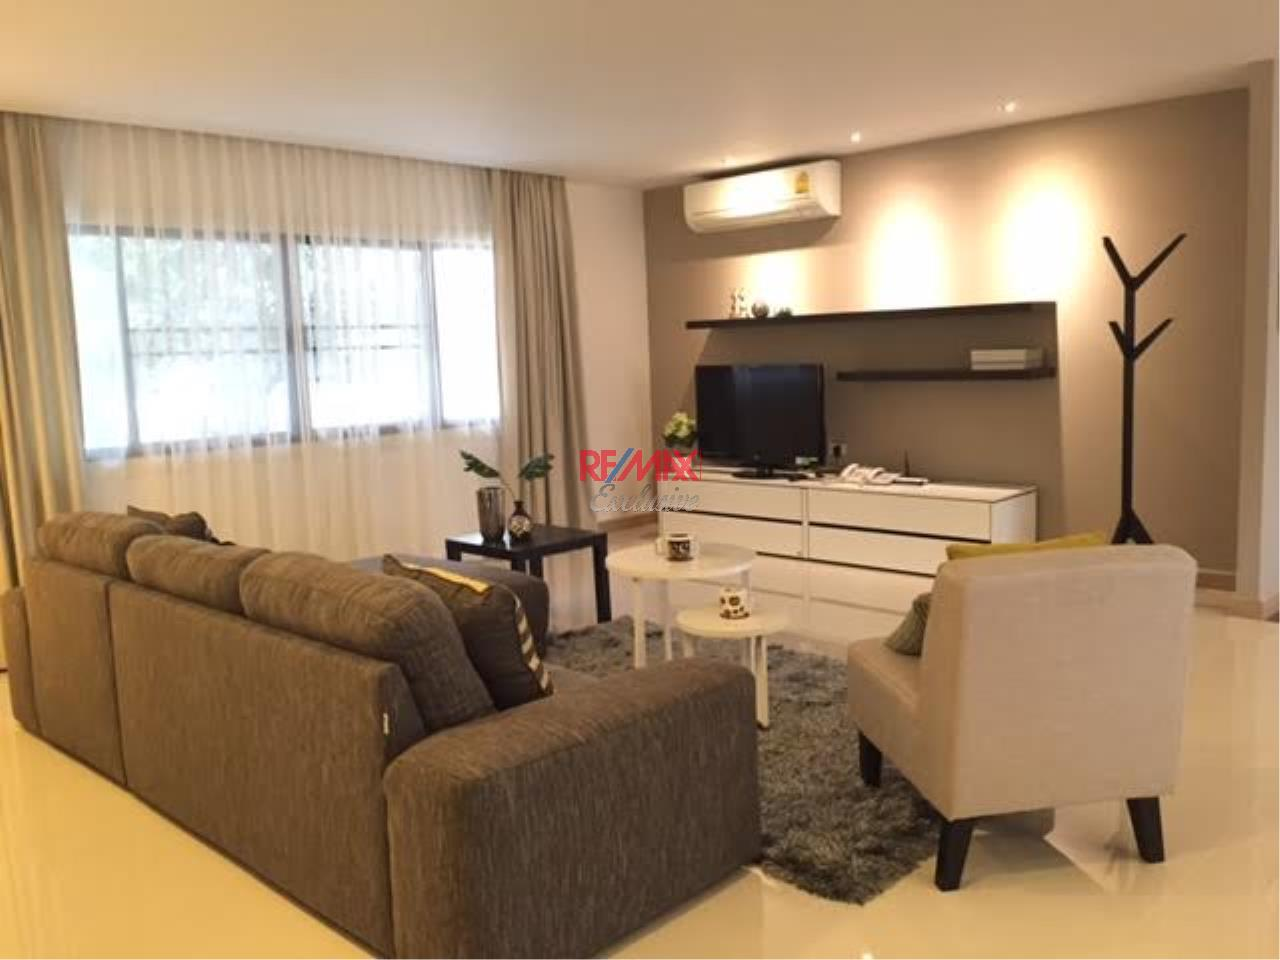 RE/MAX Exclusive Agency's Big Space Apartment in Thonglor for rent 86,000 THB 11